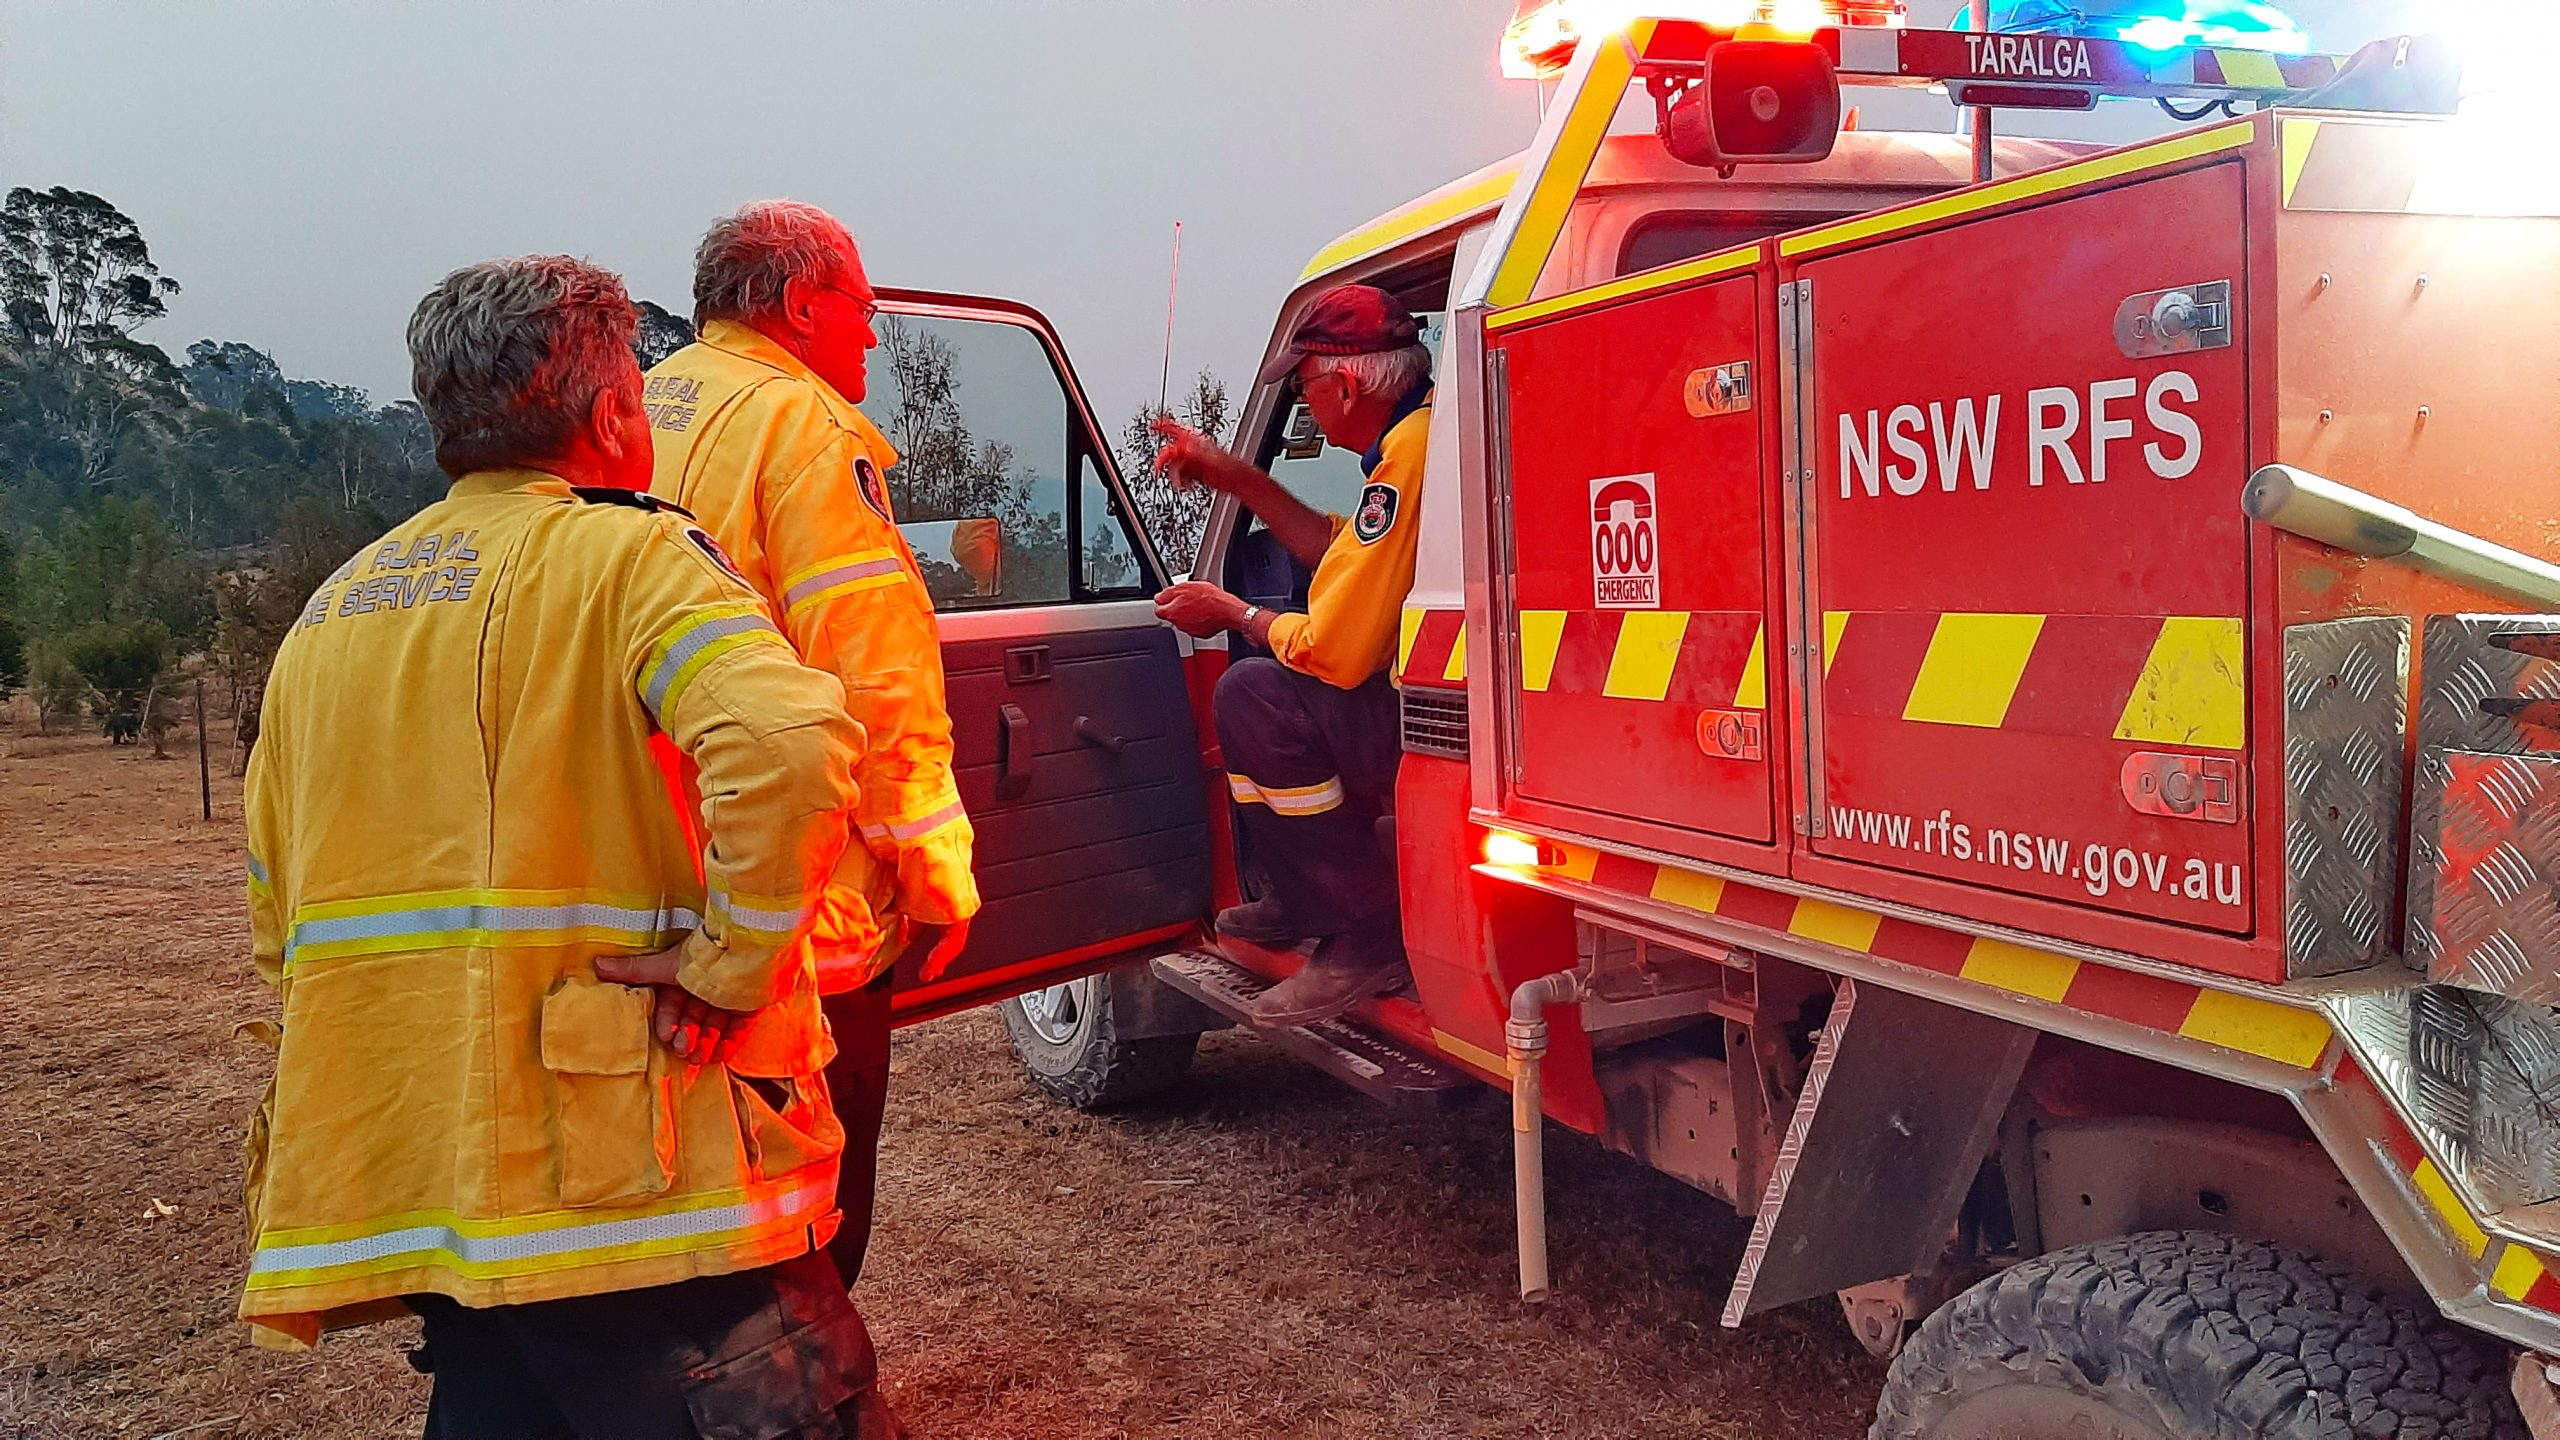 Three firefighters with a New South Wales Rural Fire Service truck. Two of them are standing next to the truck and one is in the drivers seat.